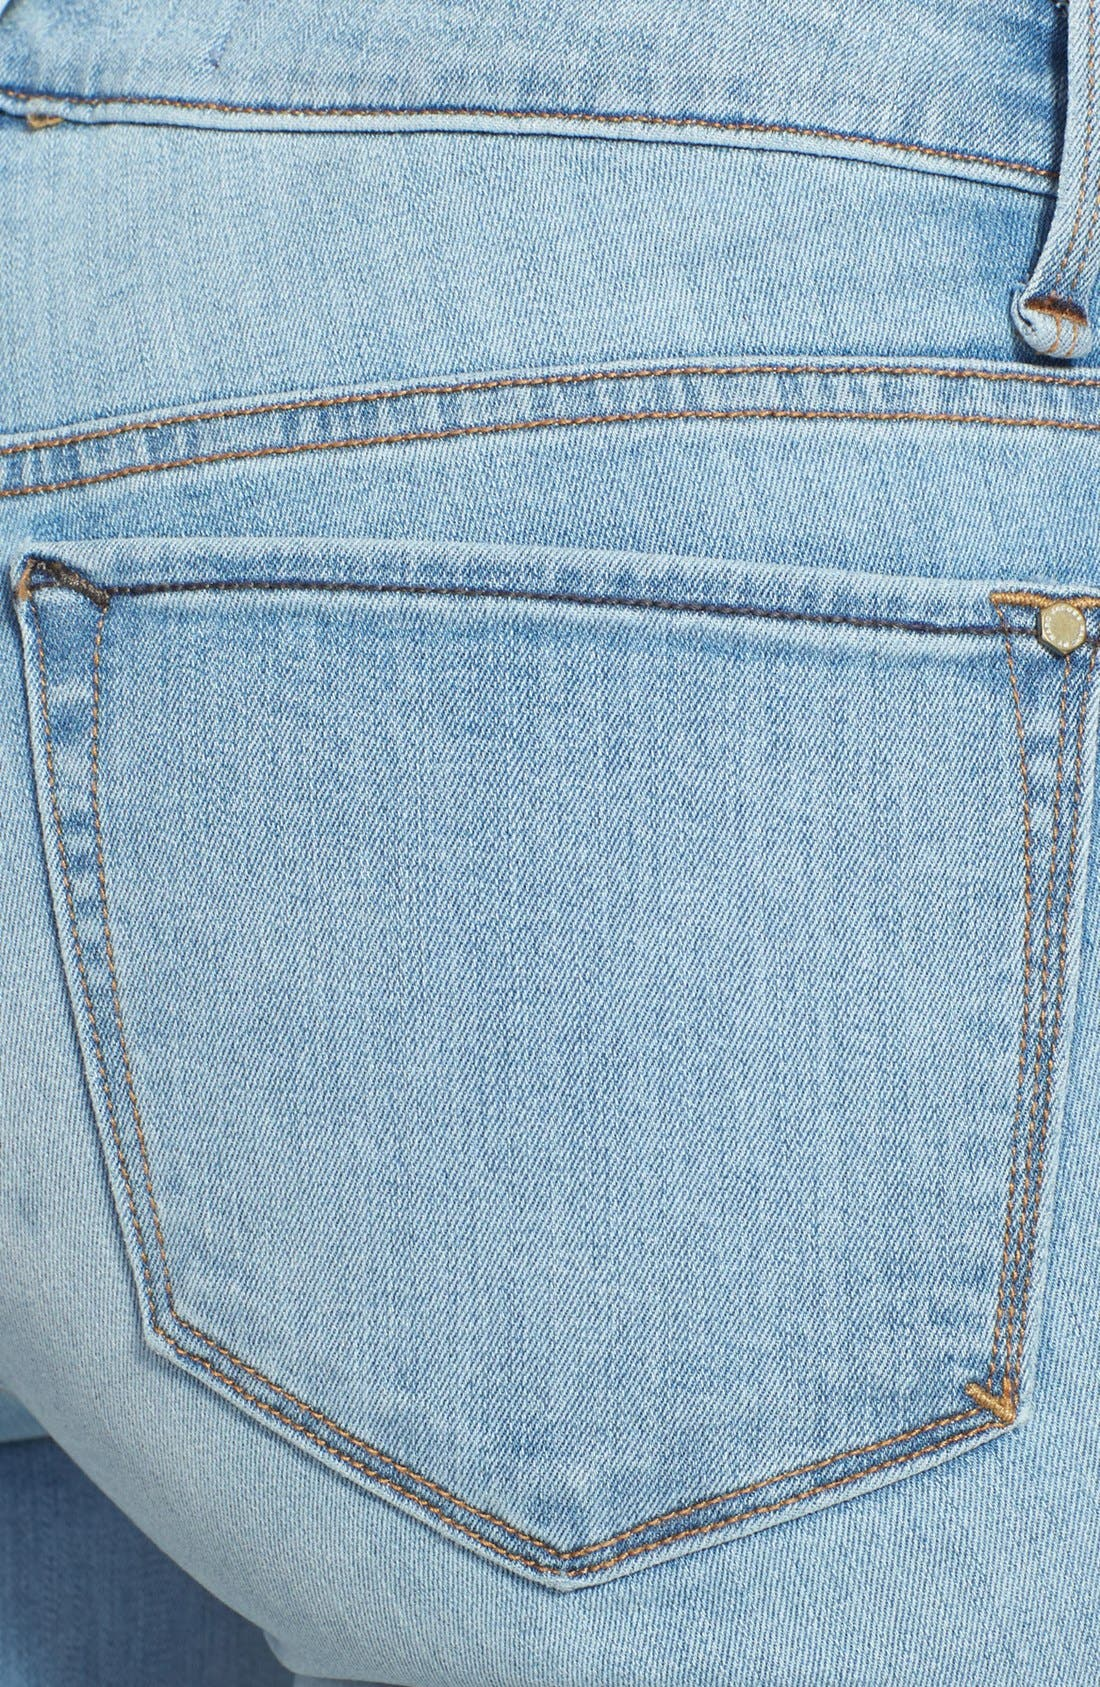 Alternate Image 3  - MARC BY MARC JACOBS 'Gaia' Stretch Super Skinny Jeans (Avalon)